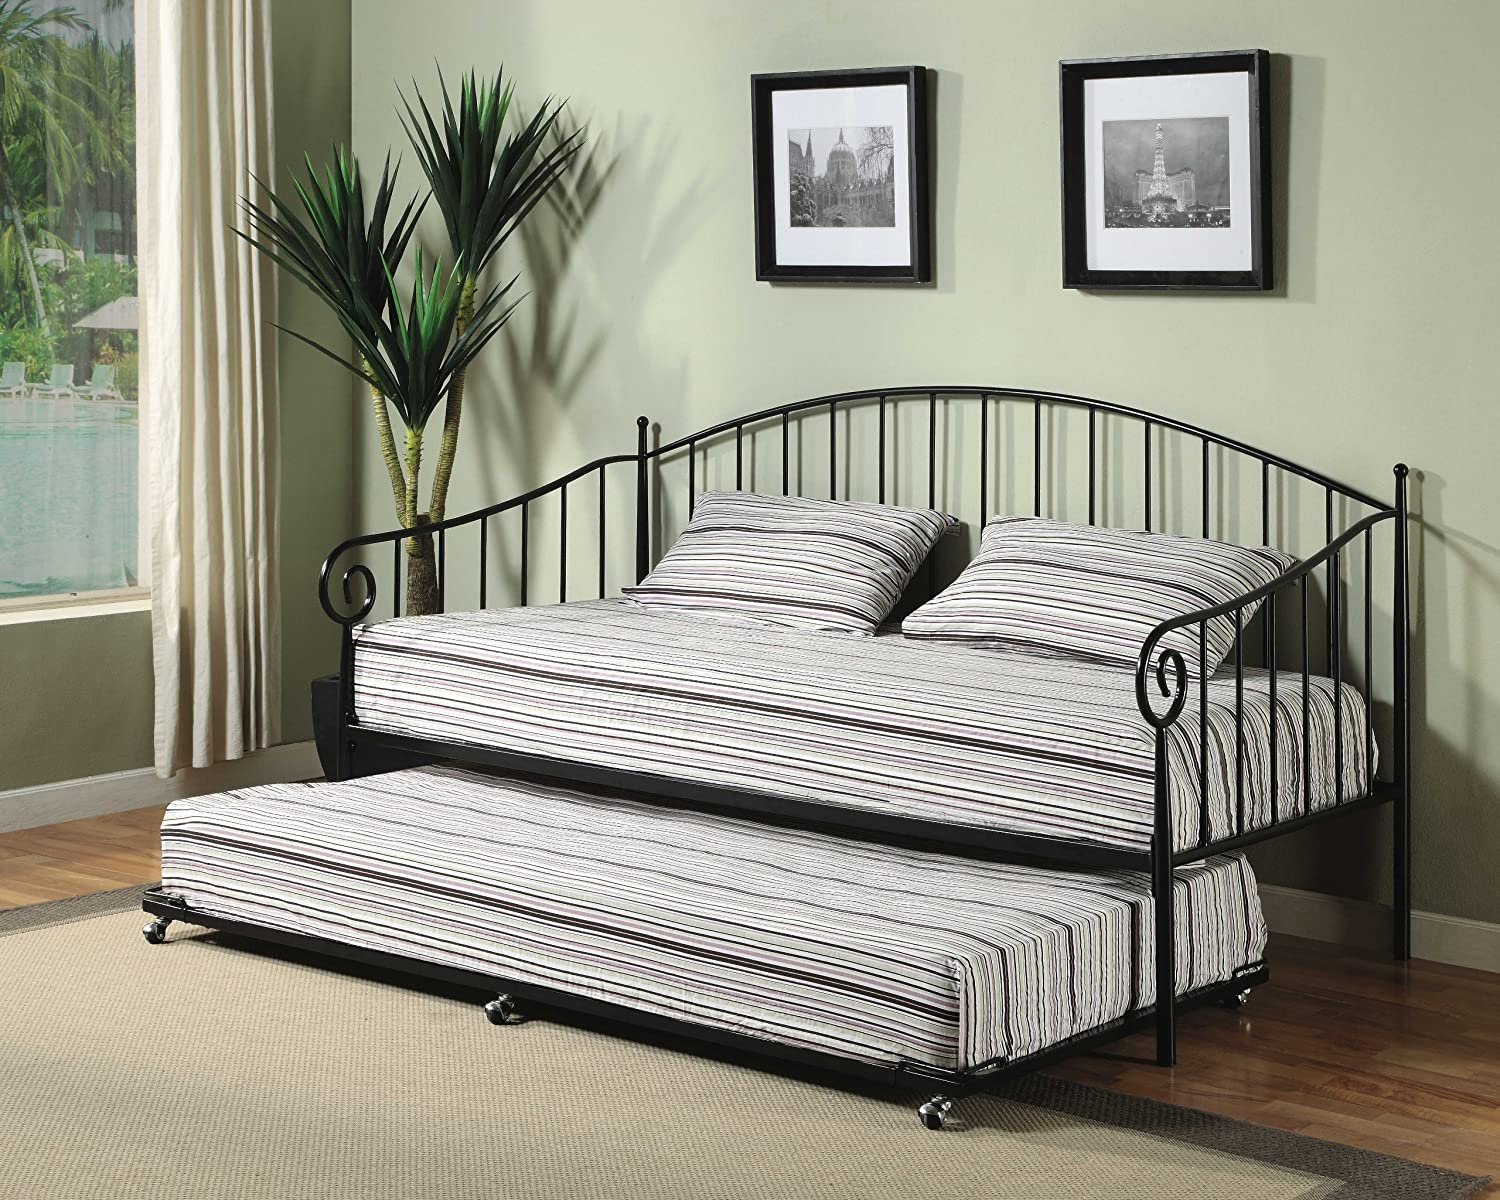 Amazon.com: Black Metal Twin Size Day Bed (Daybed) Frame with Trundle &  Mattresses: Kitchen & Dining - Amazon.com: Black Metal Twin Size Day Bed (Daybed) Frame With